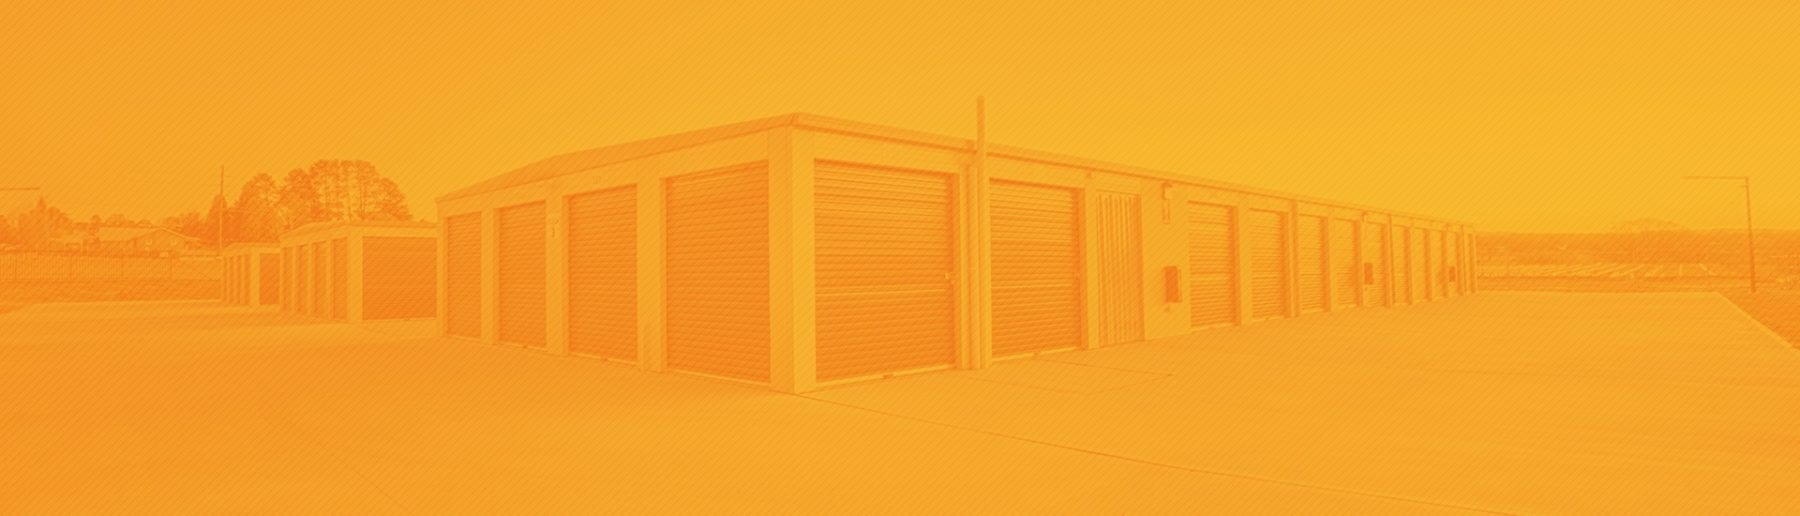 outdoor storage units with orange overlay